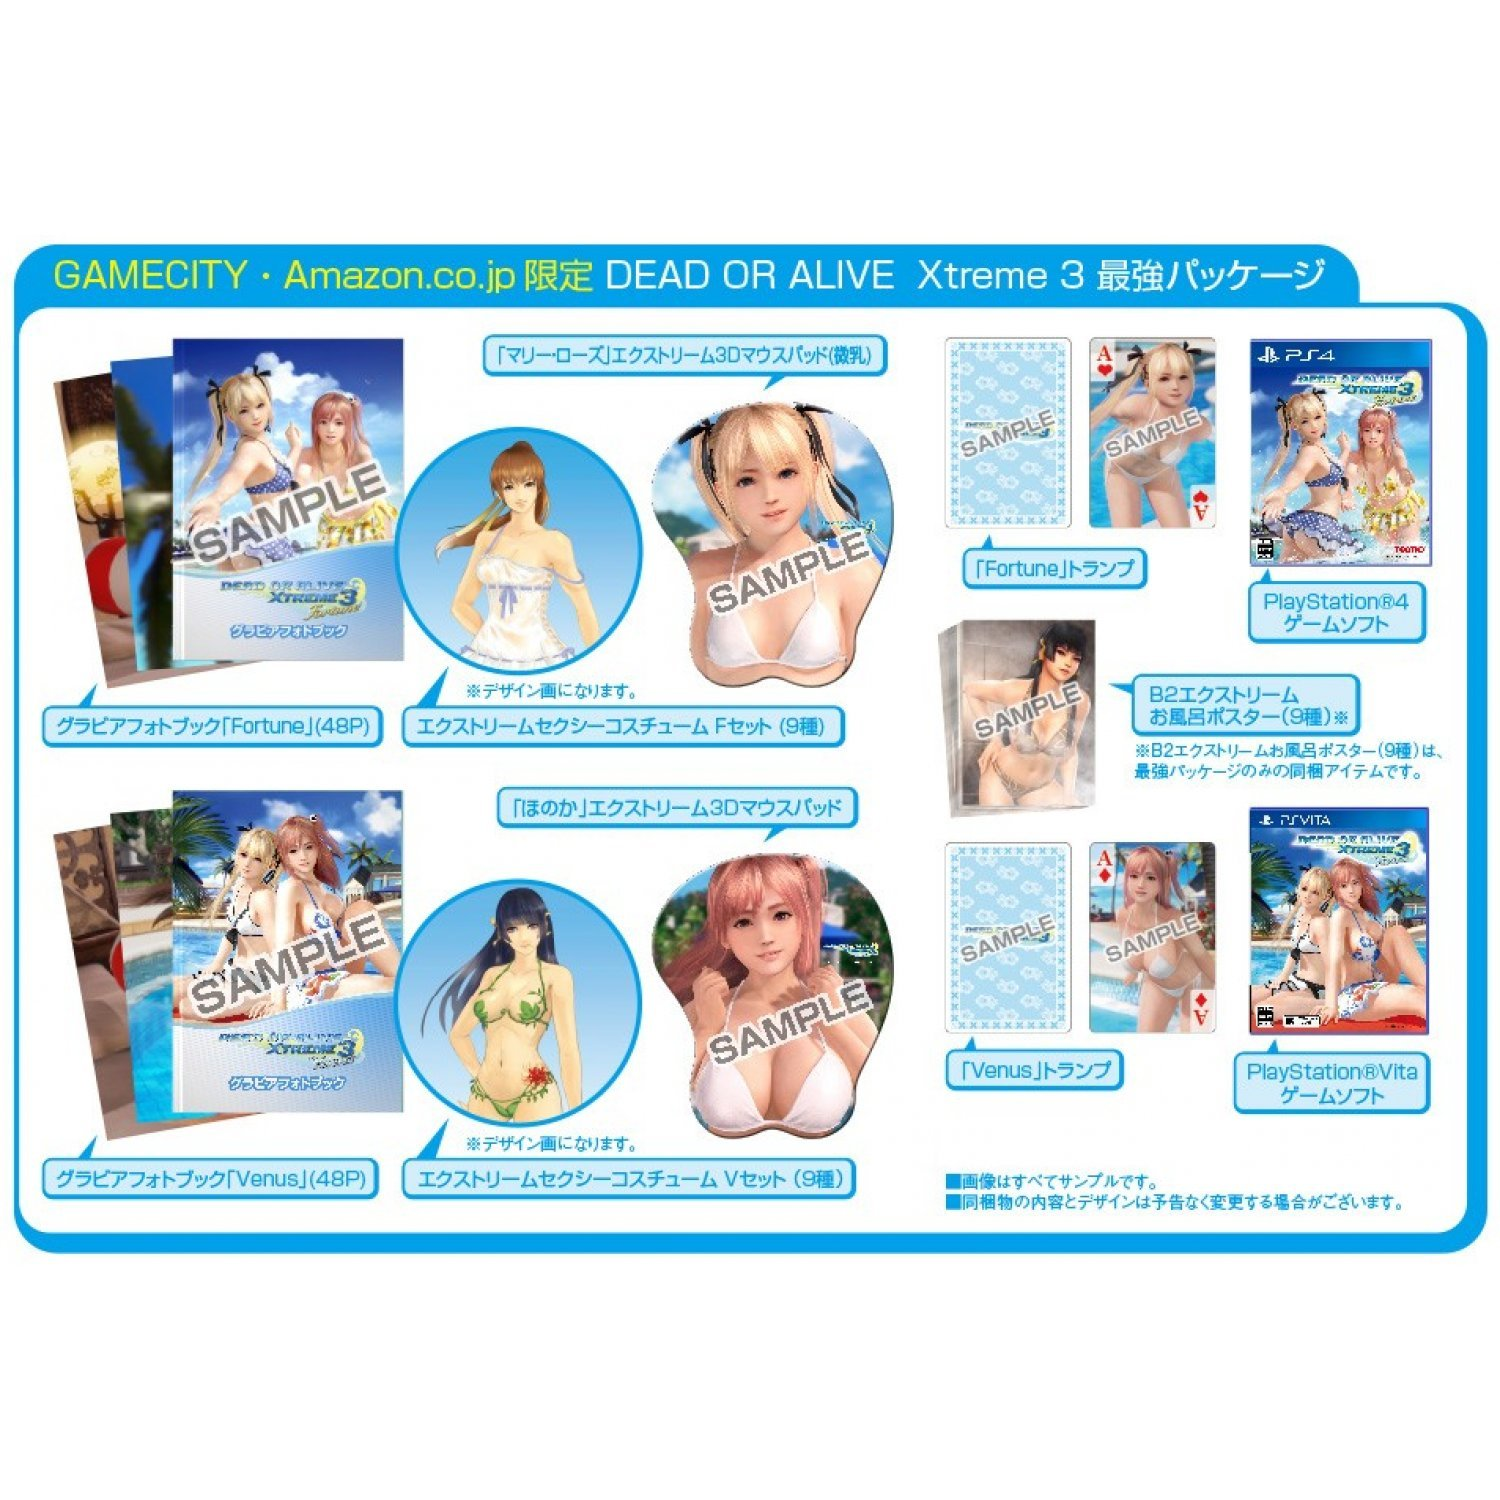 DOAX 3 Saikyou Package Asia contents